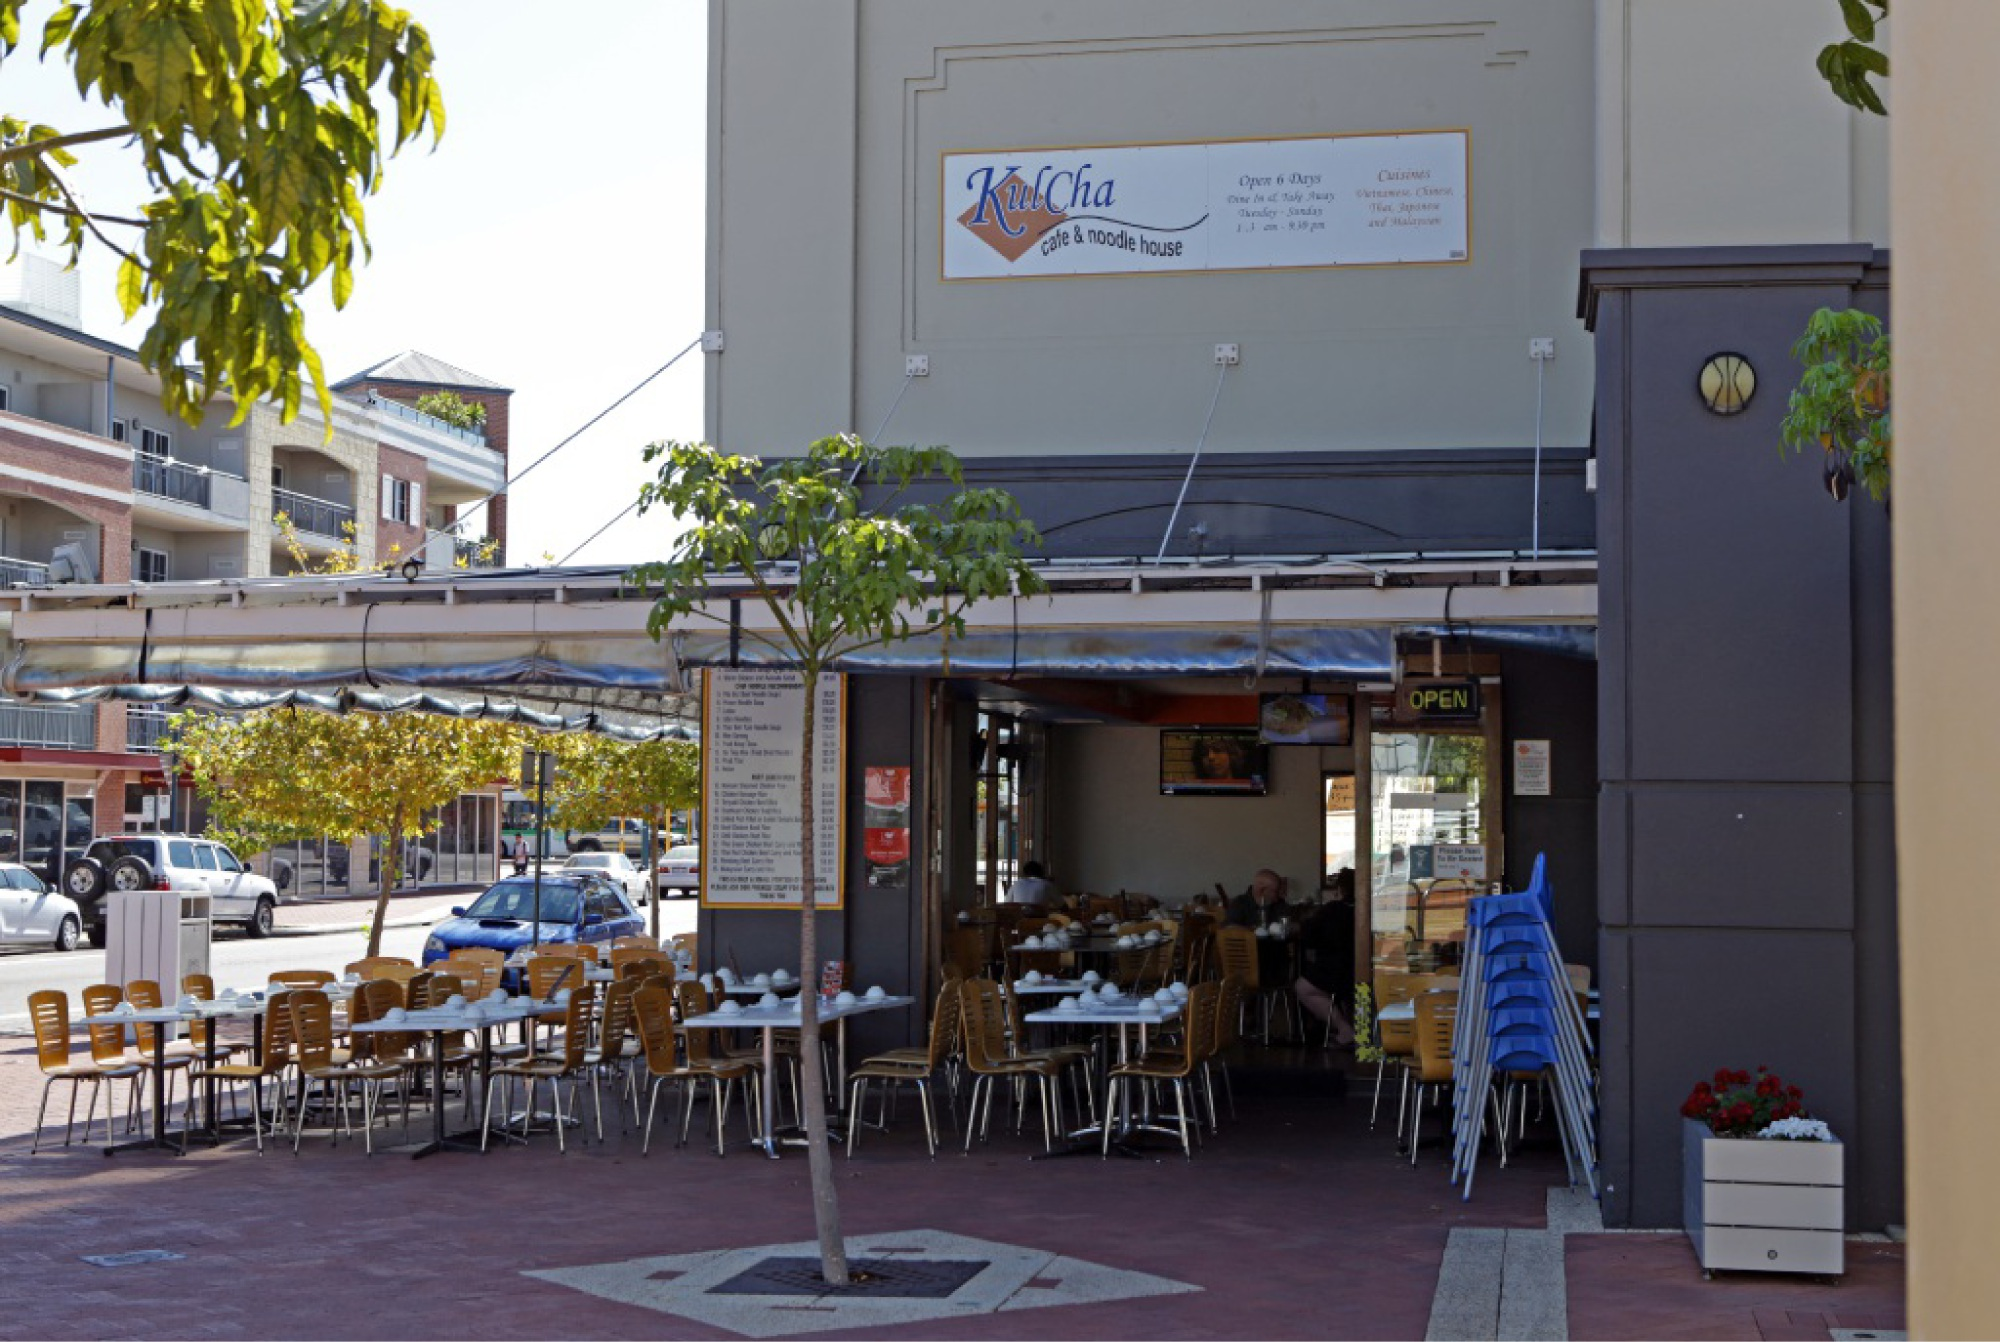 """Kulcha Cafe and Noodle House may have been the victim of an """"elaborate set-up"""", according to Joondalup Mayor Troy Pickard. d449736"""